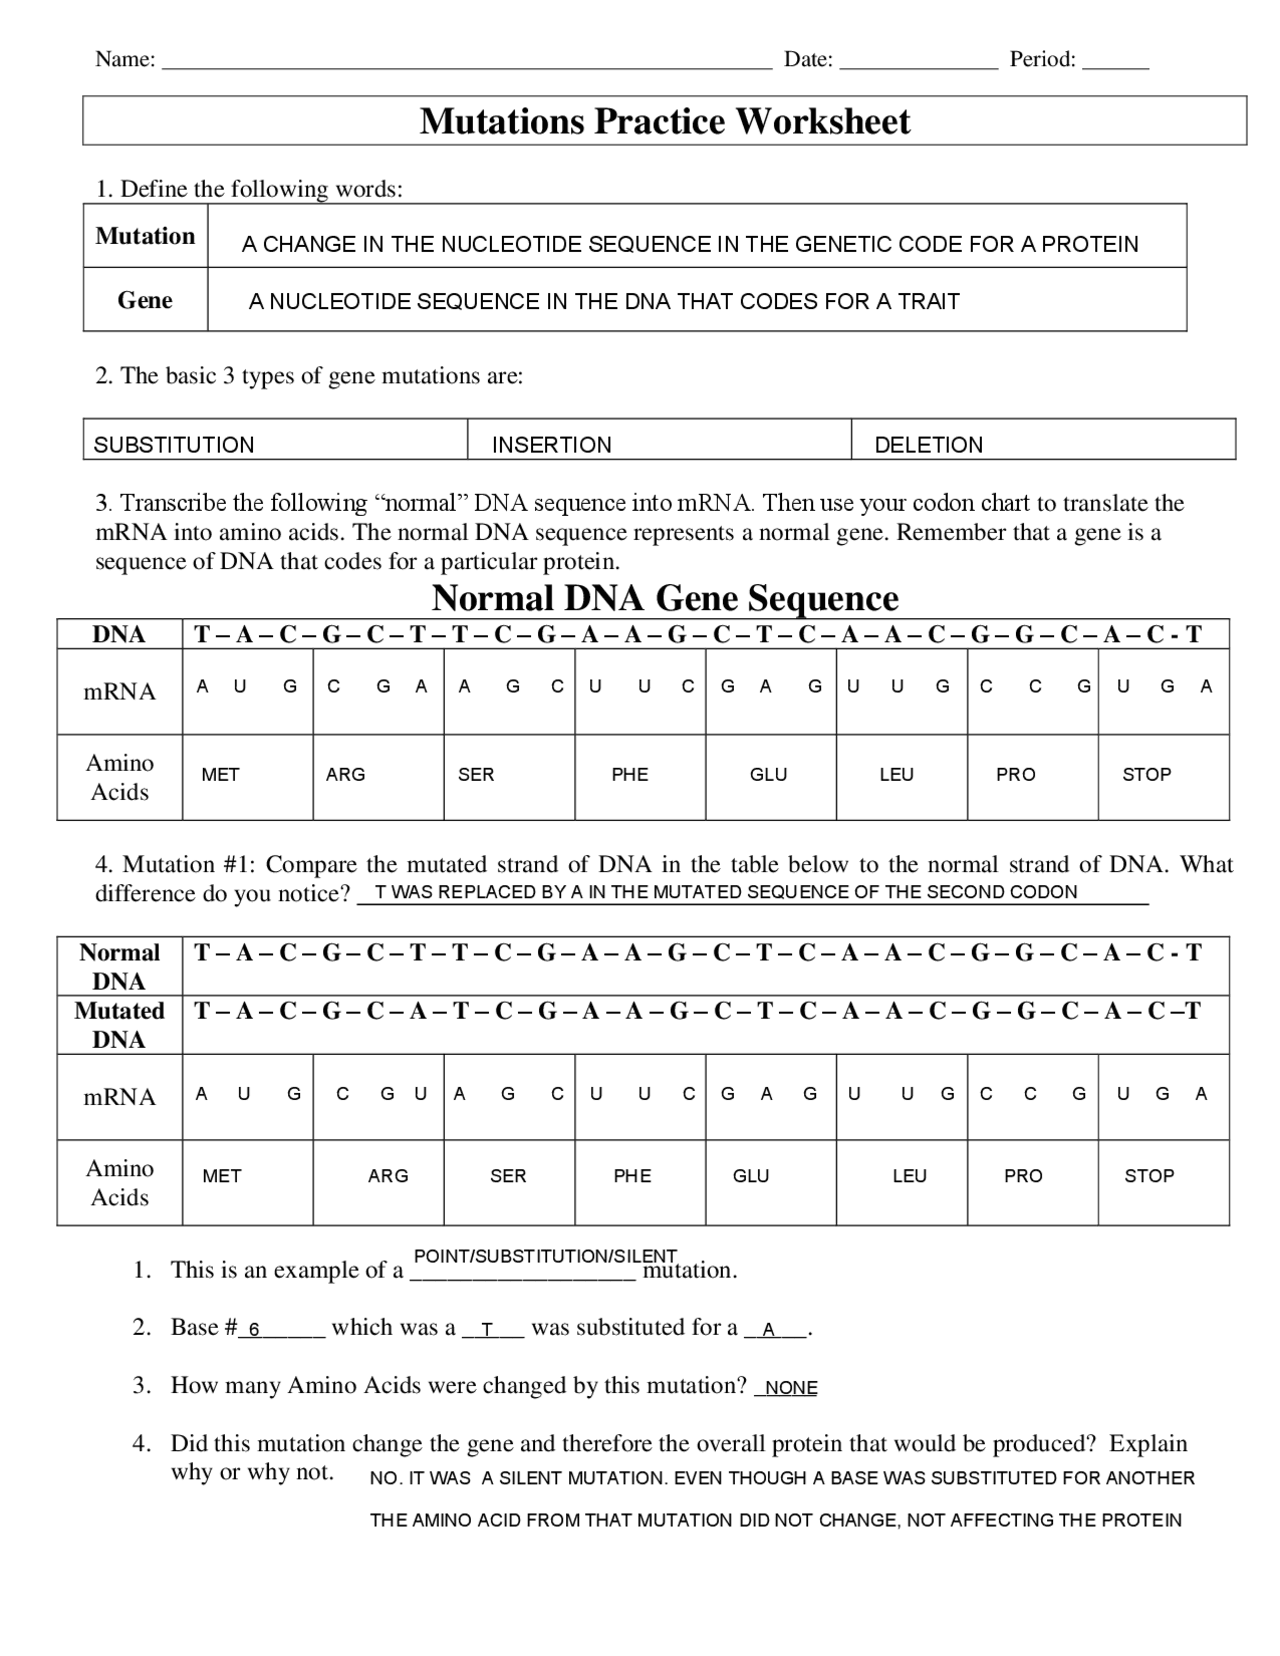 DNA Mutations Practice Worksheet with Answers - Docsity Regarding Dna Mutation Practice Worksheet Answers